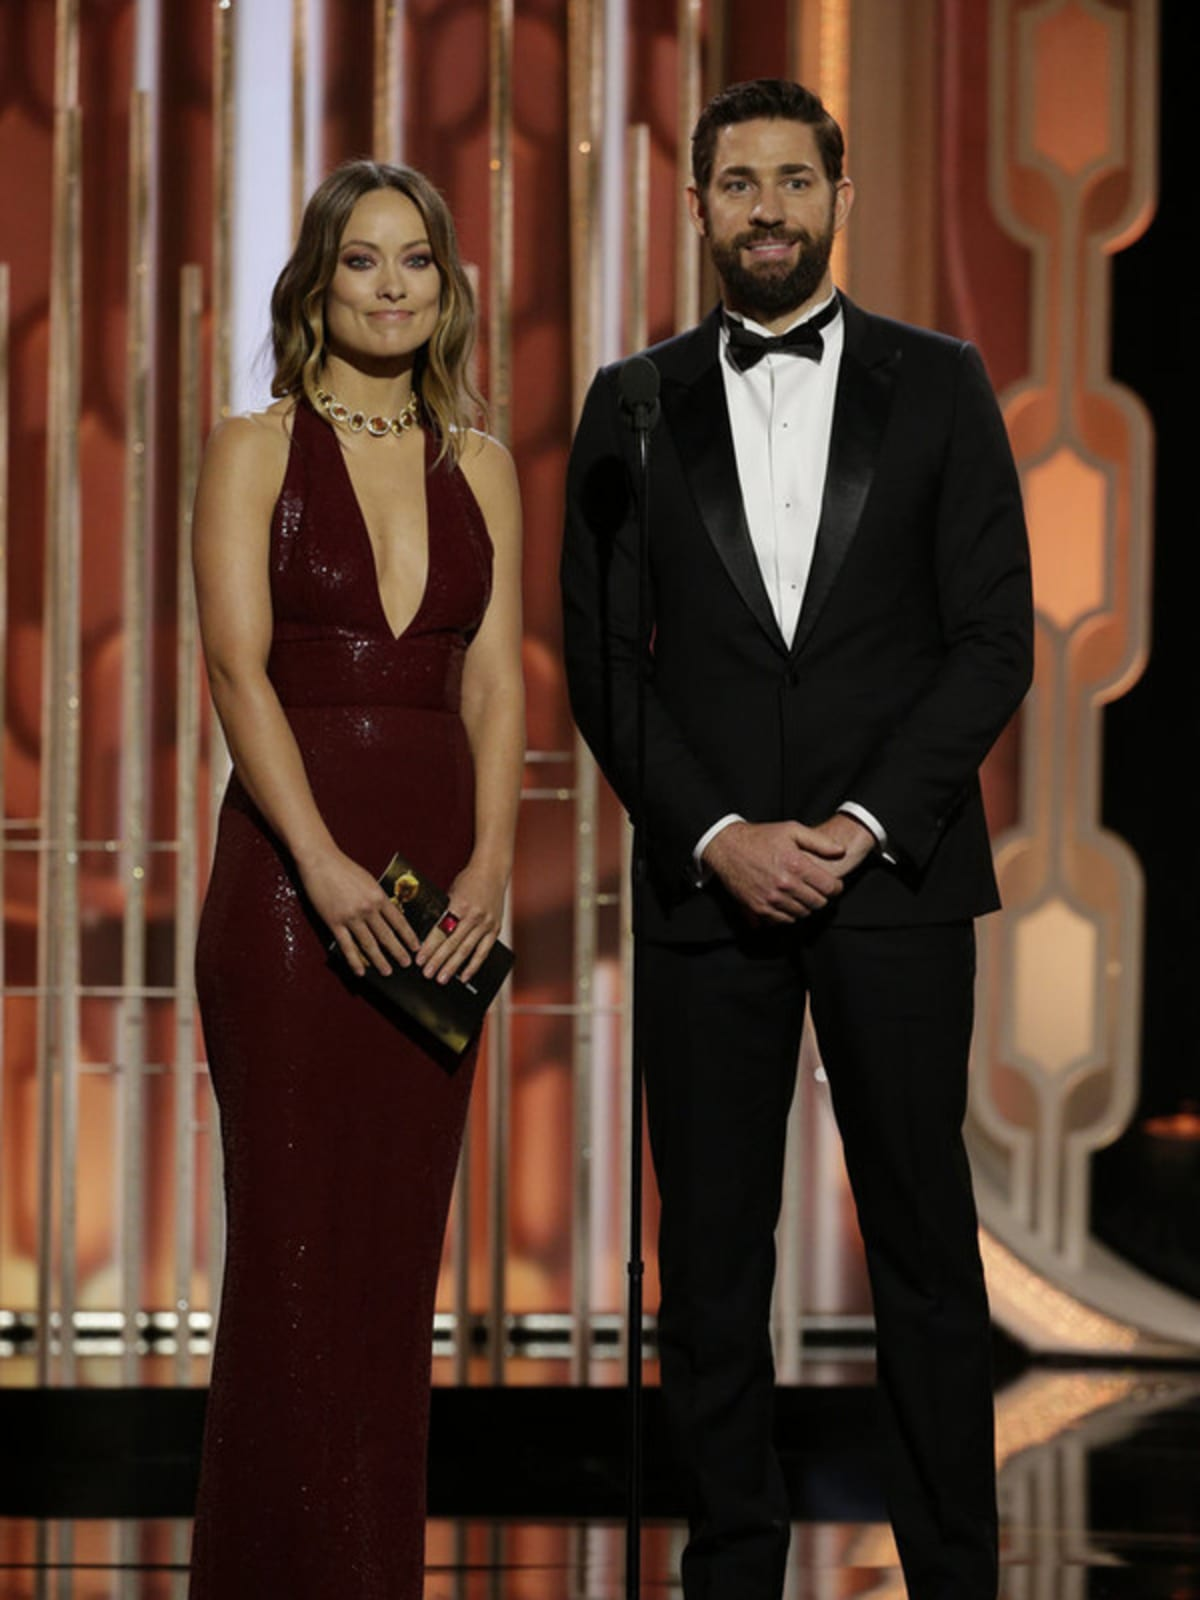 Olivia Wilde and John Krasinski at Golden Globe Awards